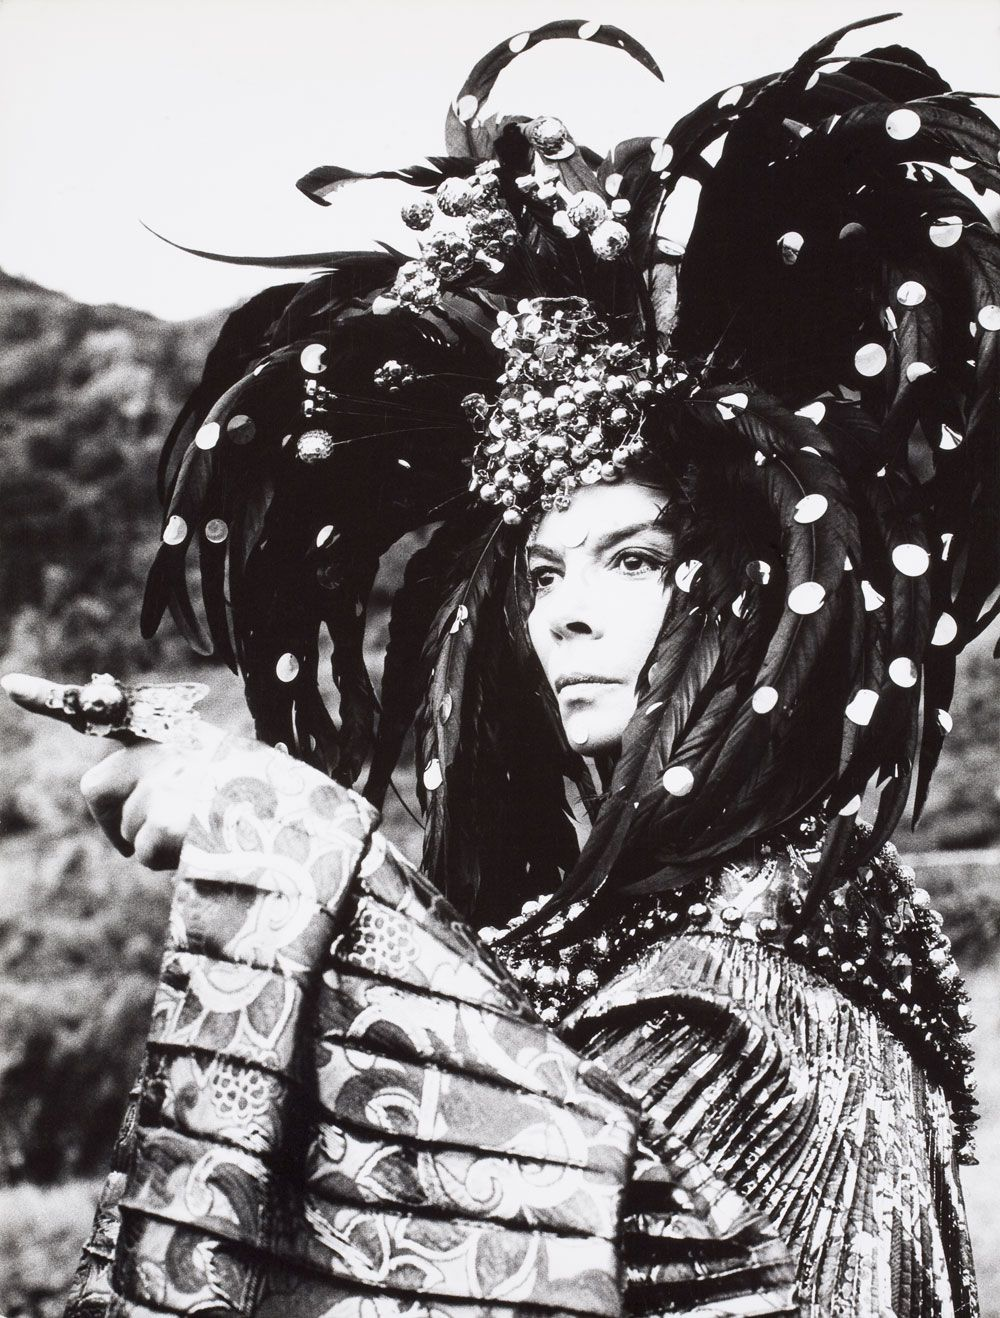 Leonor Fini at the monastery of Nonza, Corse, 1967, photography by Eddy Brofferio